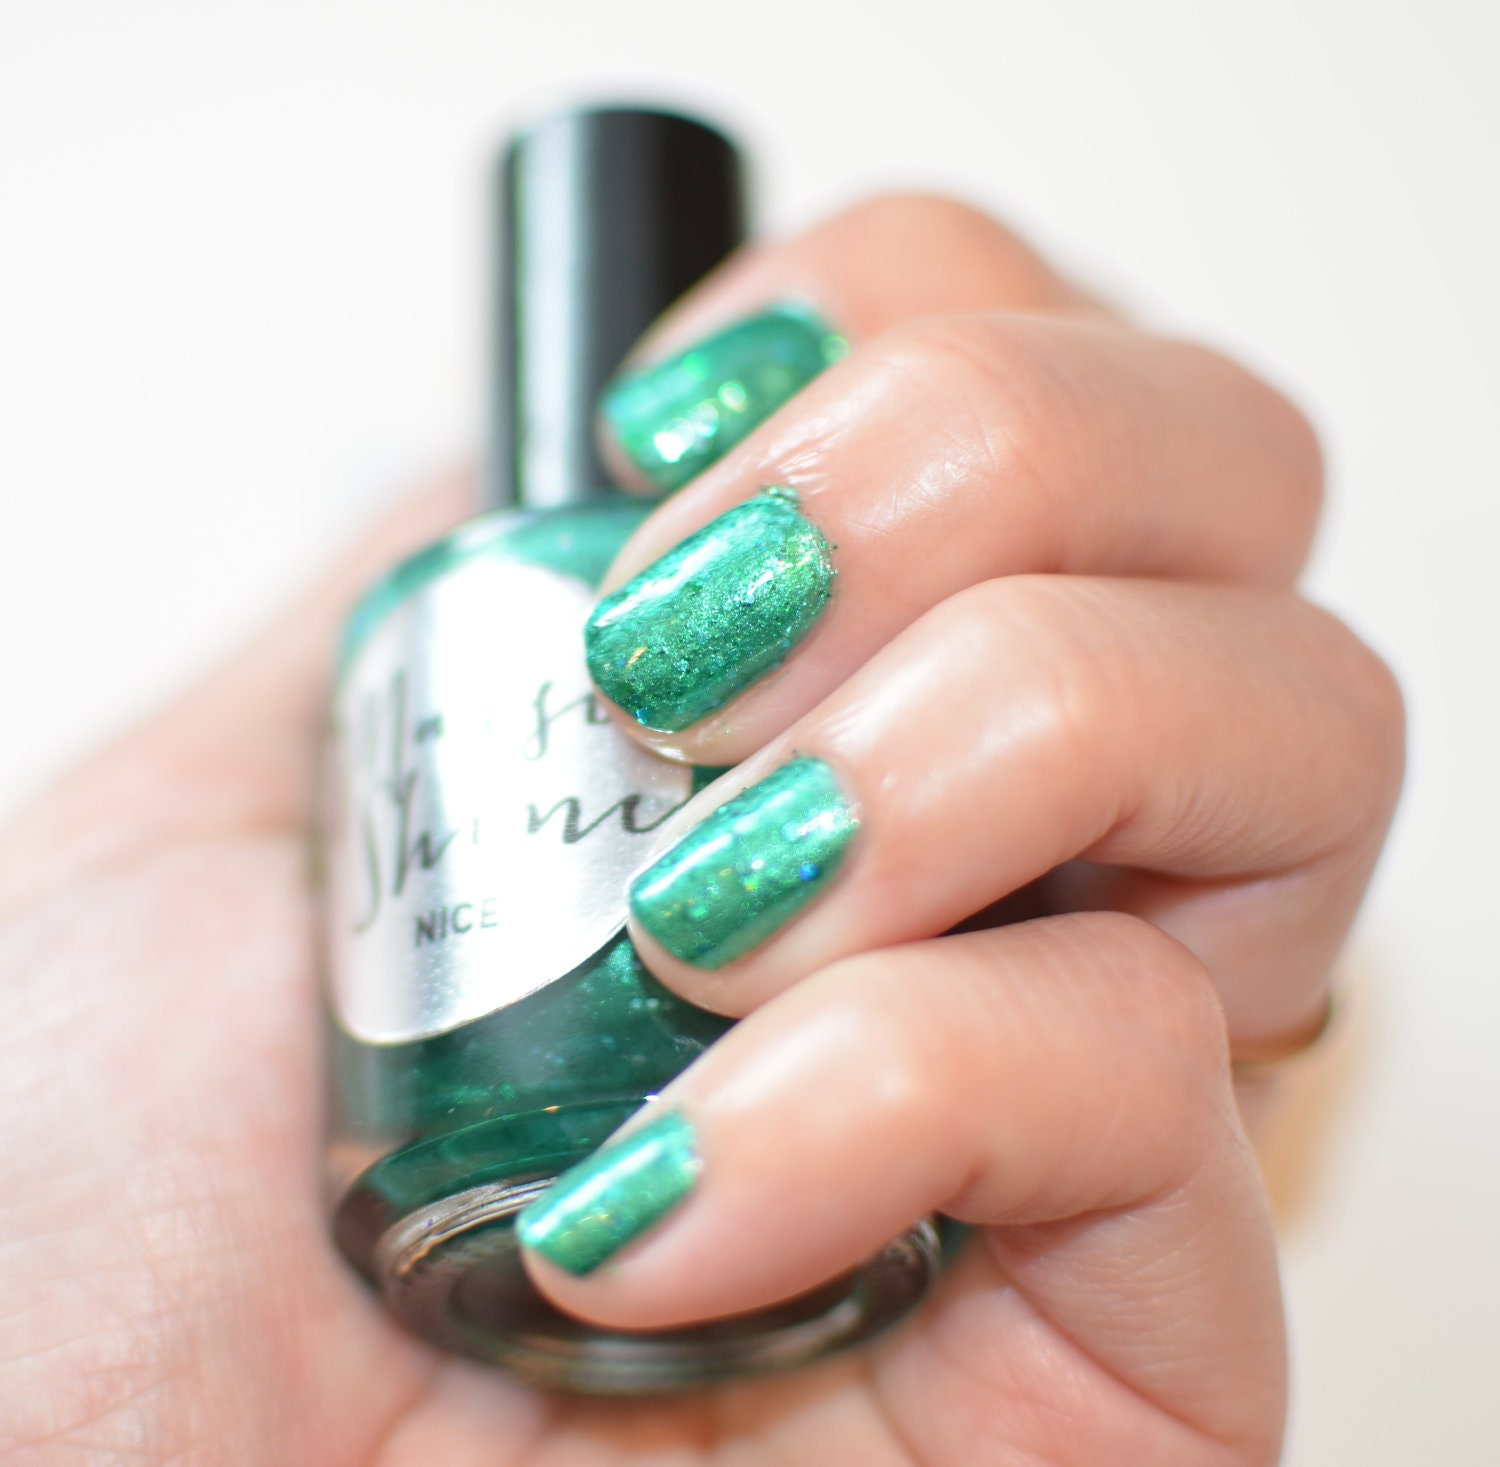 Nail Polish: Nice - Green with Teal and Green Glitters